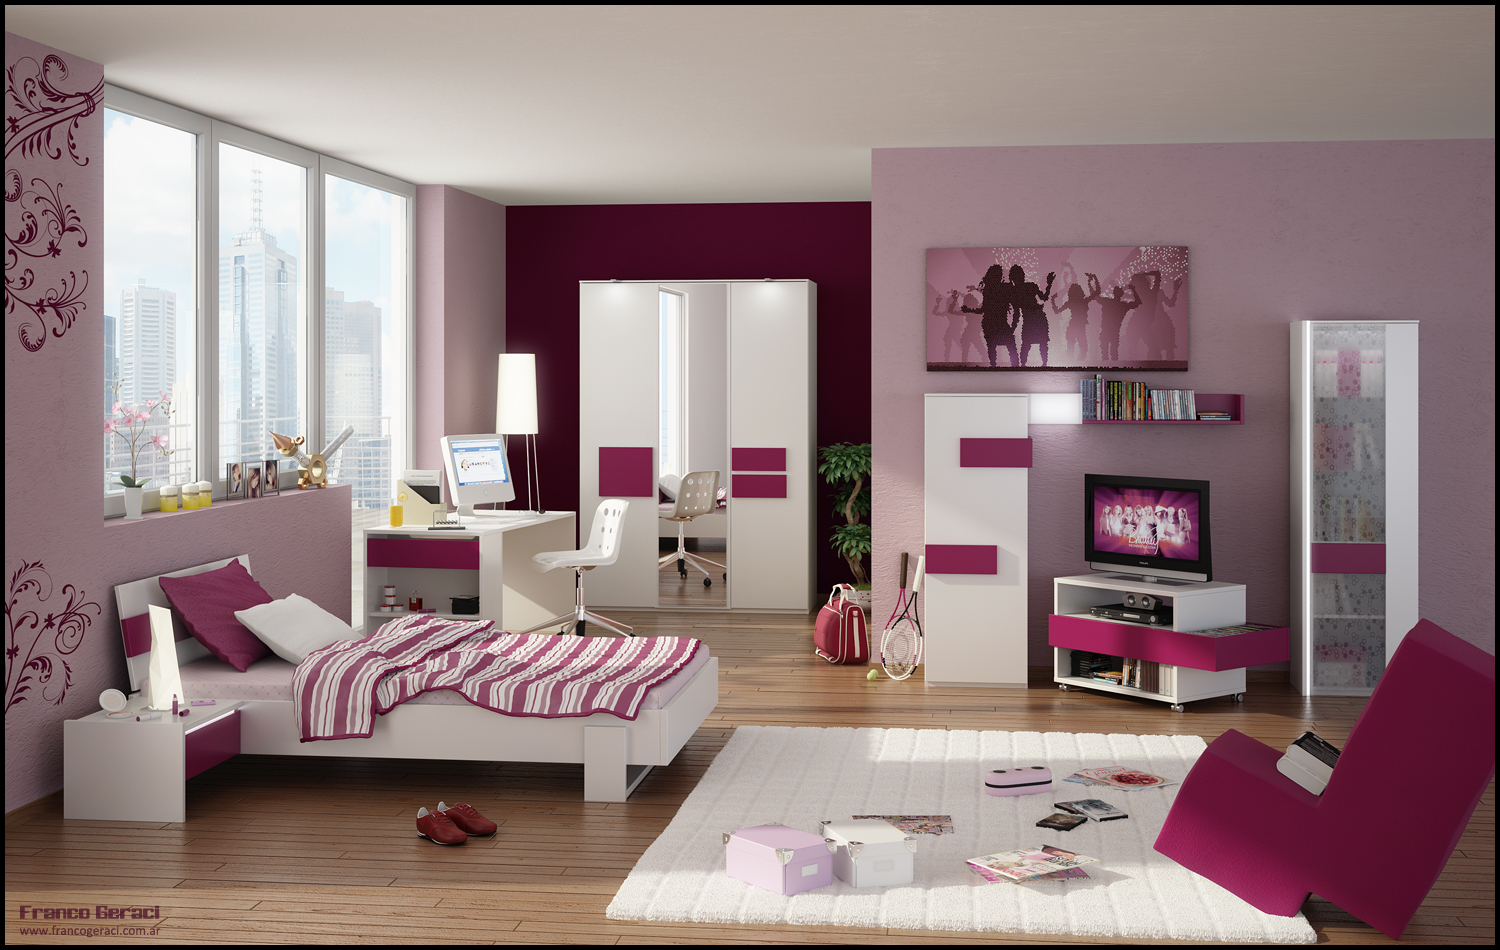 3dteen room byfeg - Teenagers Room Decoration